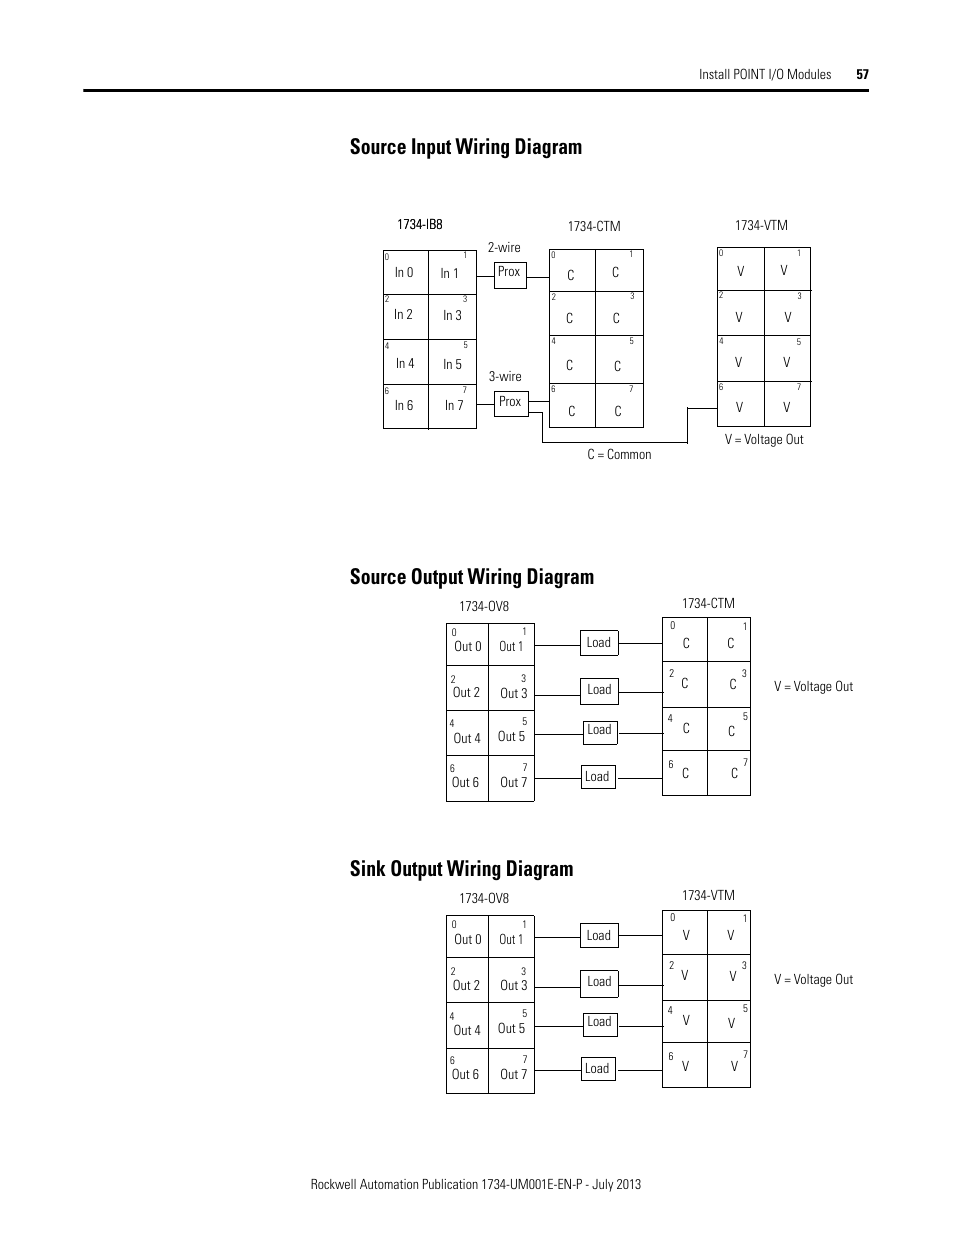 rockwell automation 1734 xxxx point i_o digital and analog modules and pointblock i_o modules page73 source input wiring diagram, source output wiring diagram, sink 1734 fpd wiring diagram at crackthecode.co